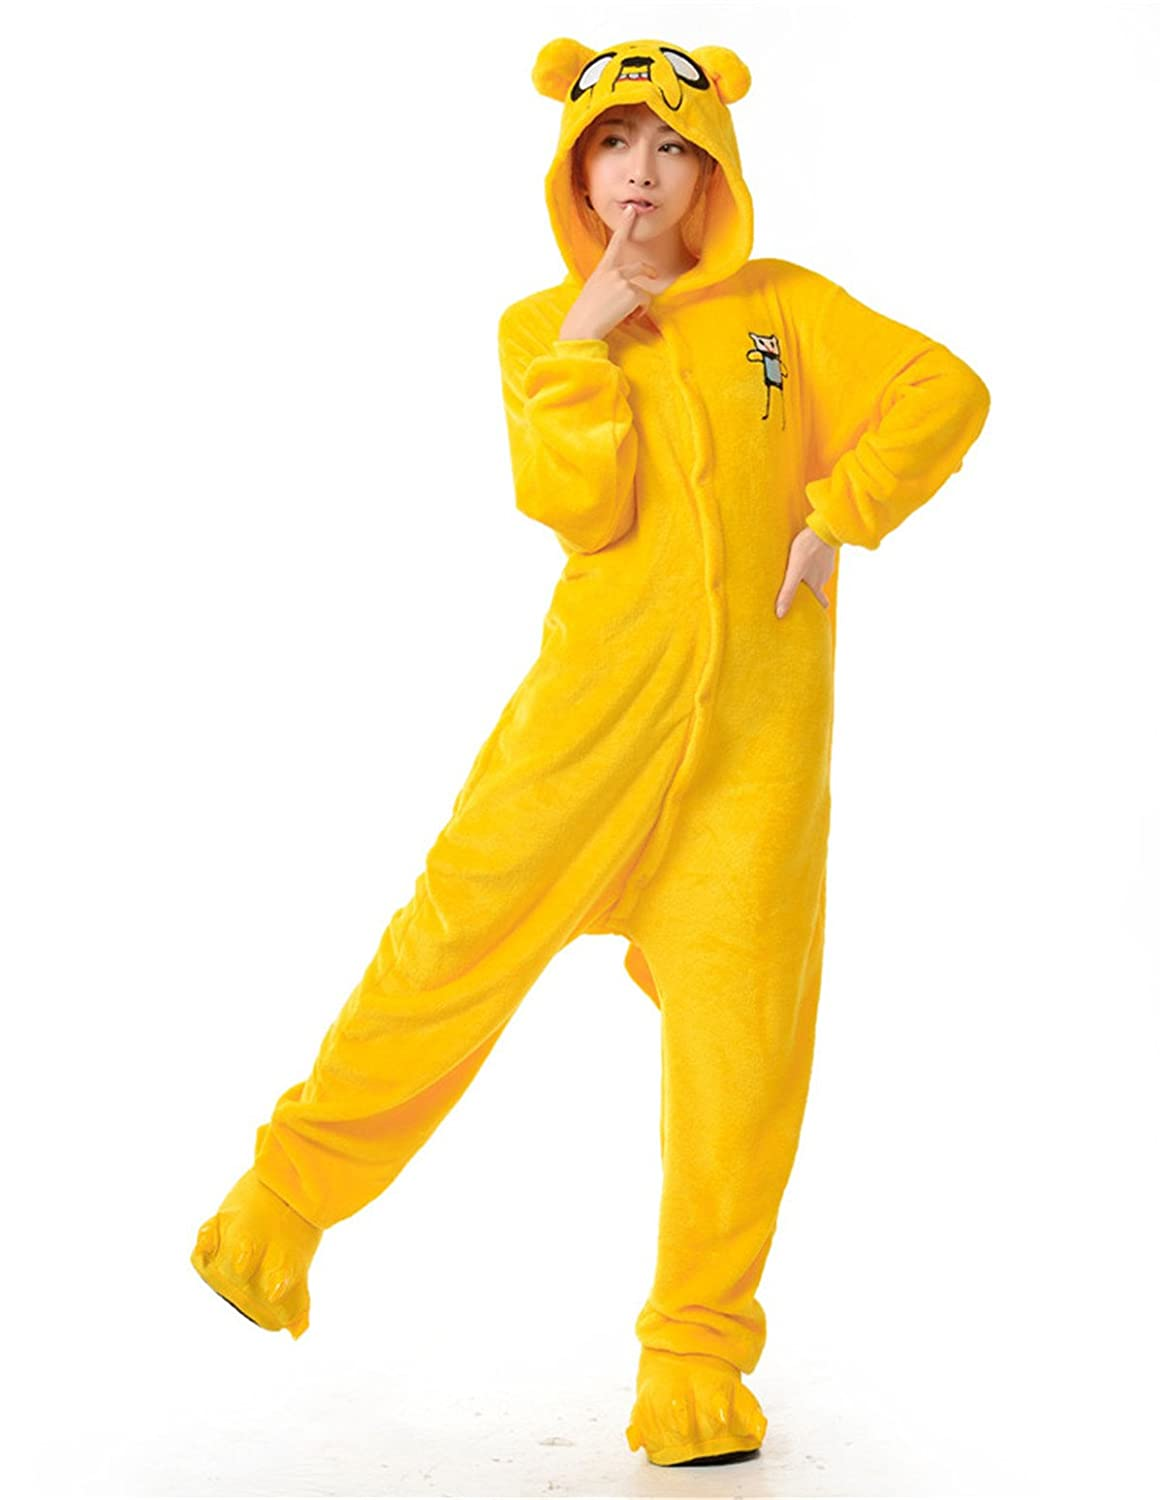 Amazon.com: VU ROUL Adult Halloween Costumes Kigurumi Onesies Pajama Cosplay Unisex Lounge: Clothing